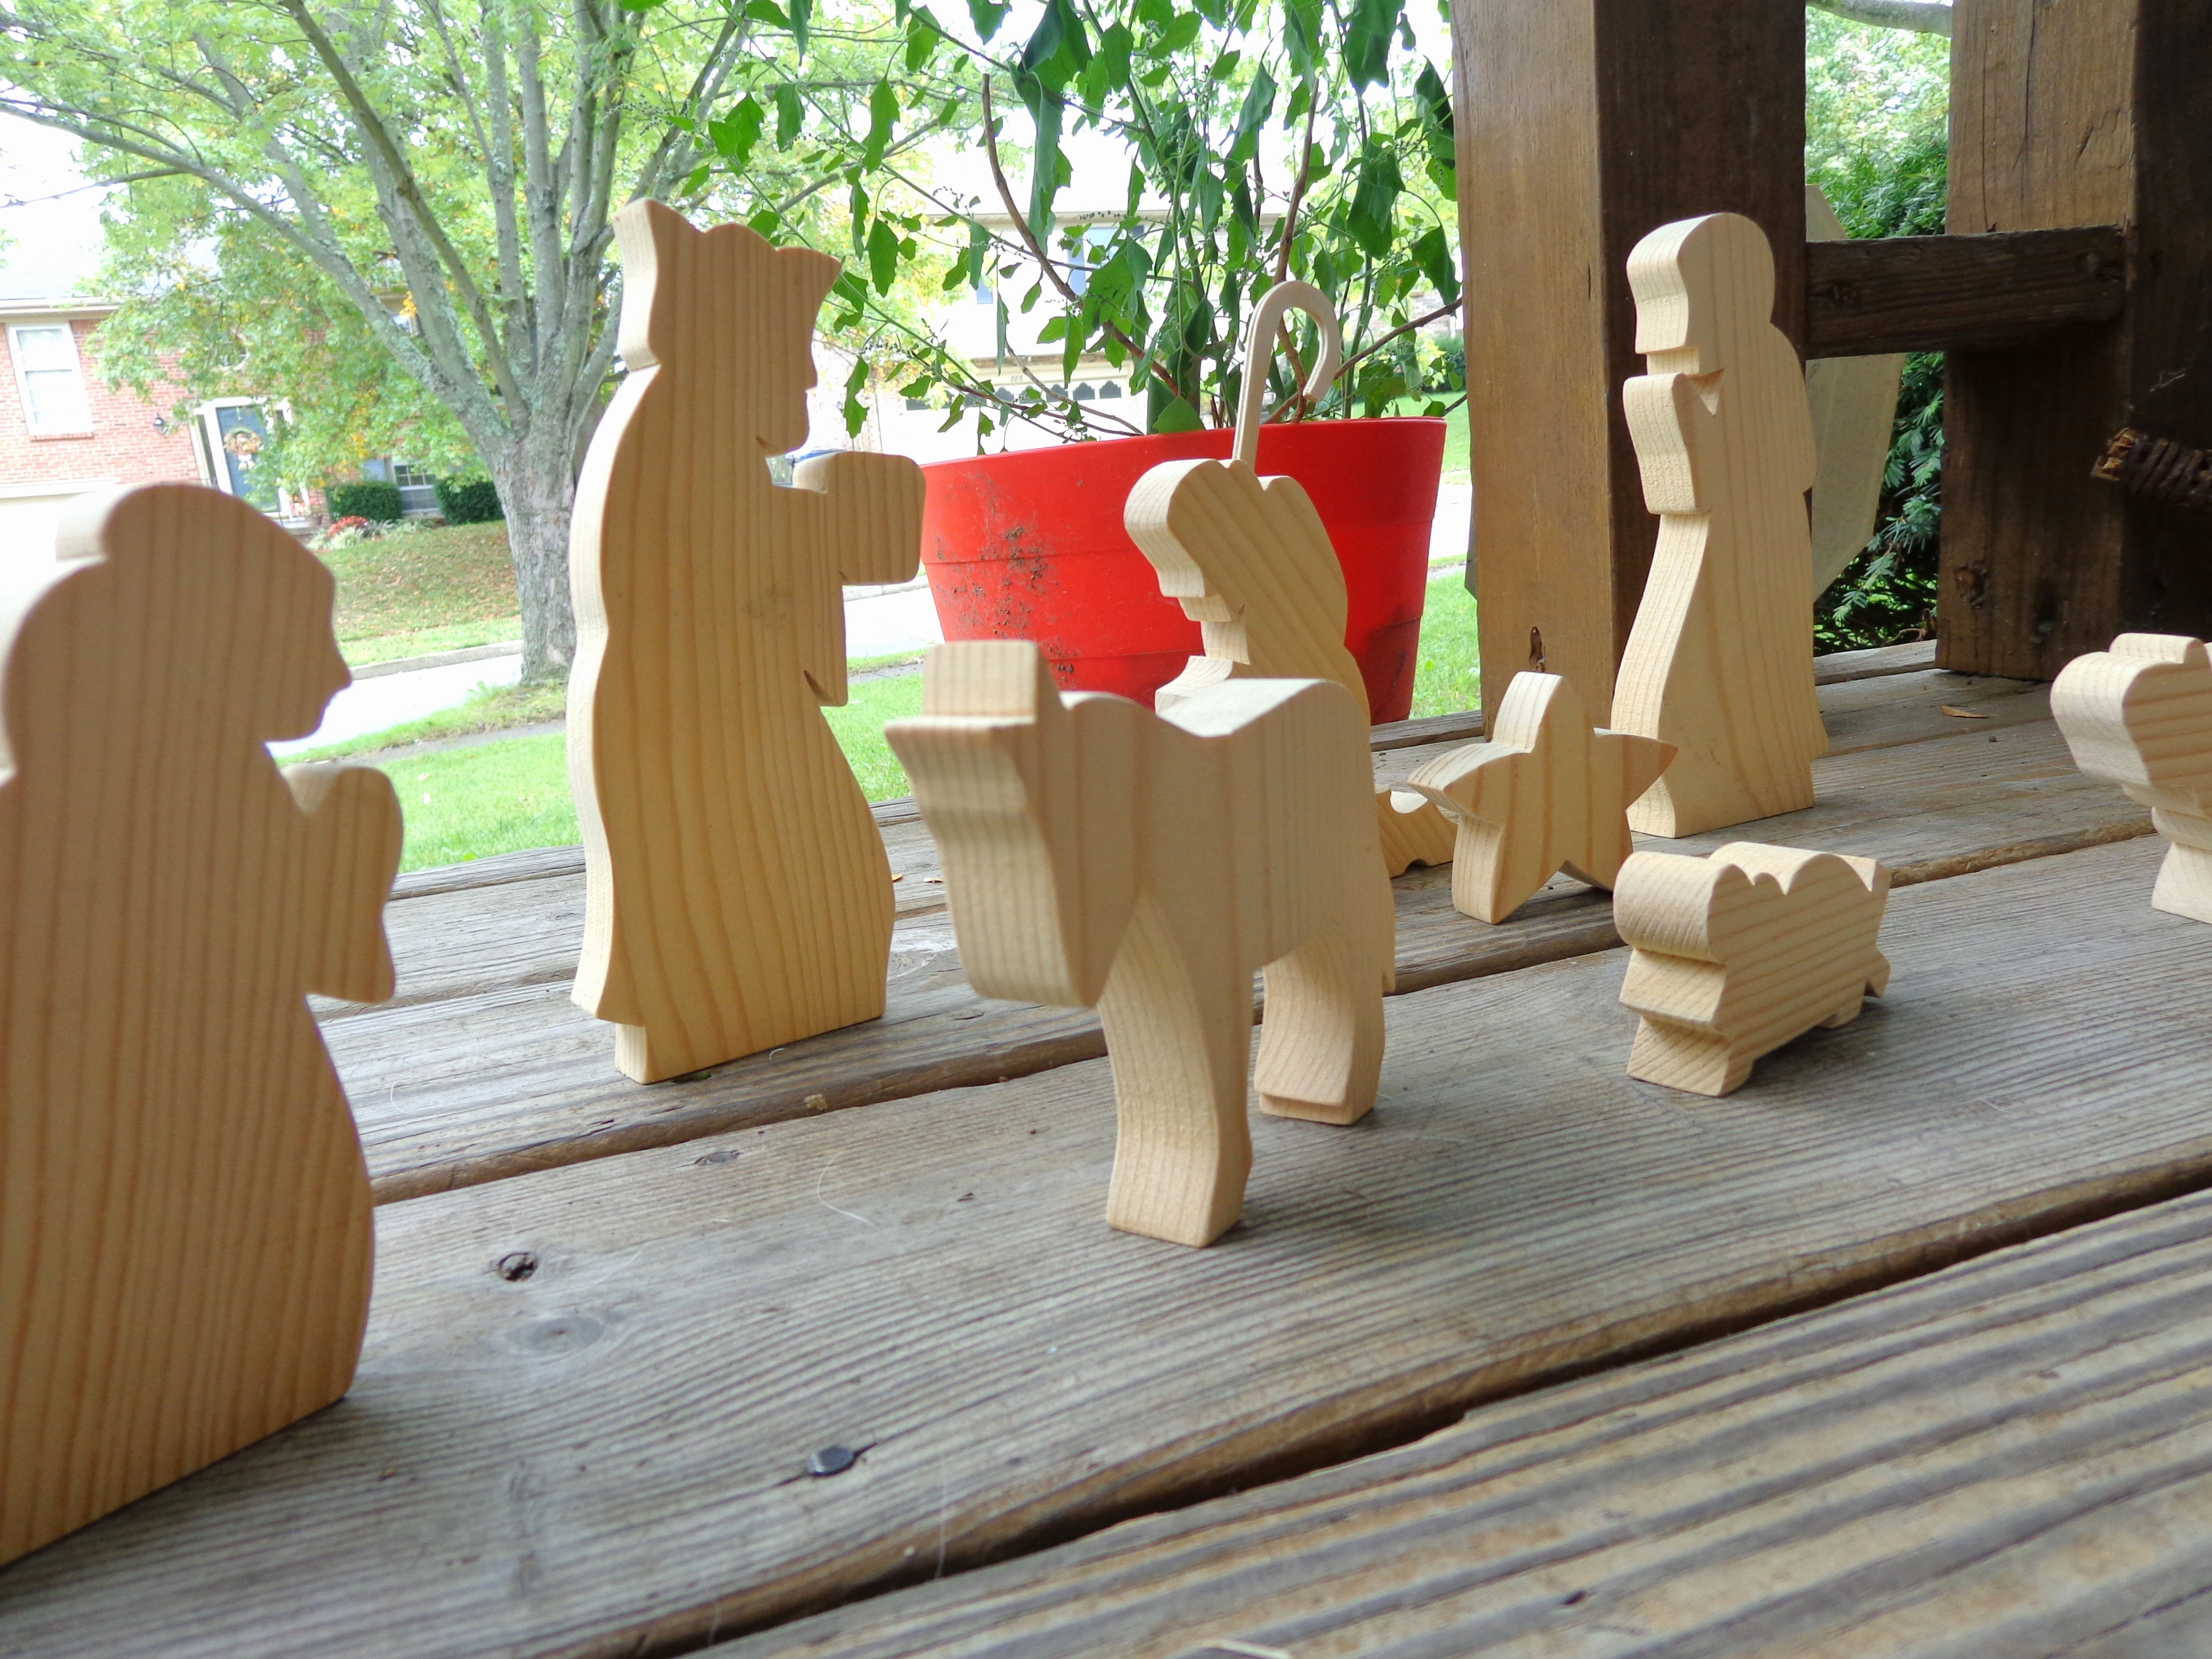 Free Outdoor Nativity Scene Patterns Inspirational Download Free Woodworking Plans Nativity Scene Plans Diy